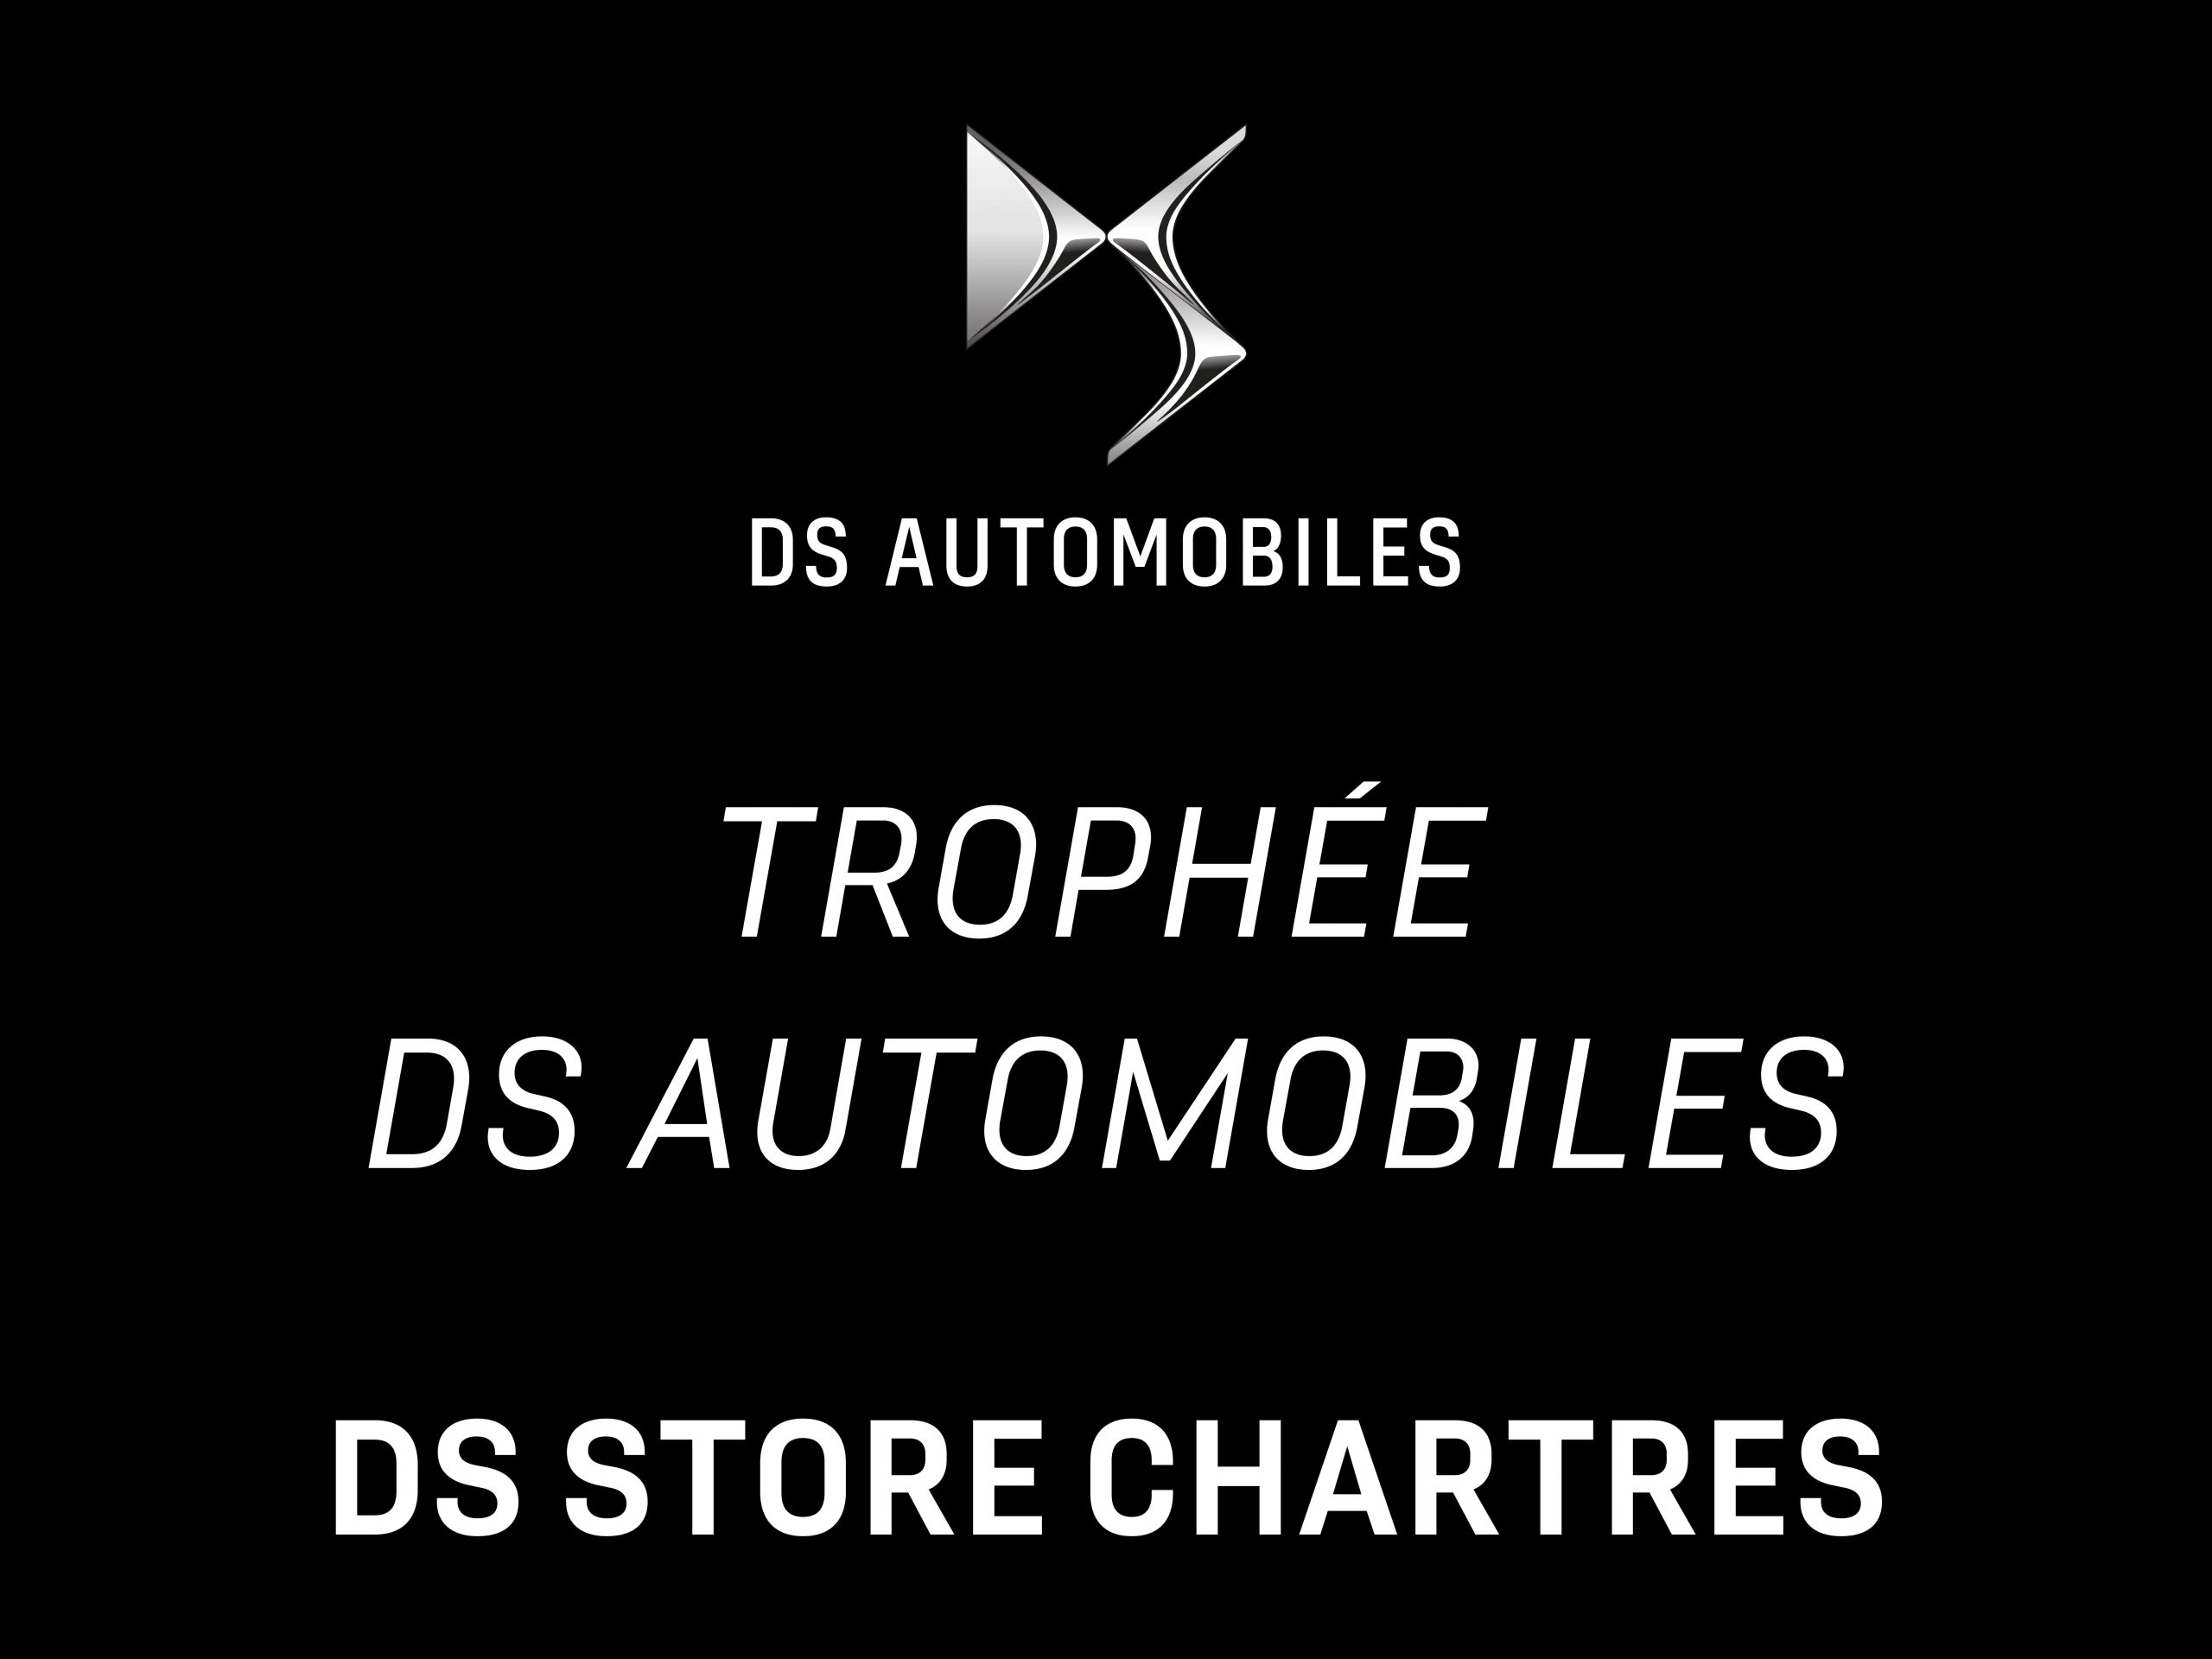 DS STORE CHARTRES